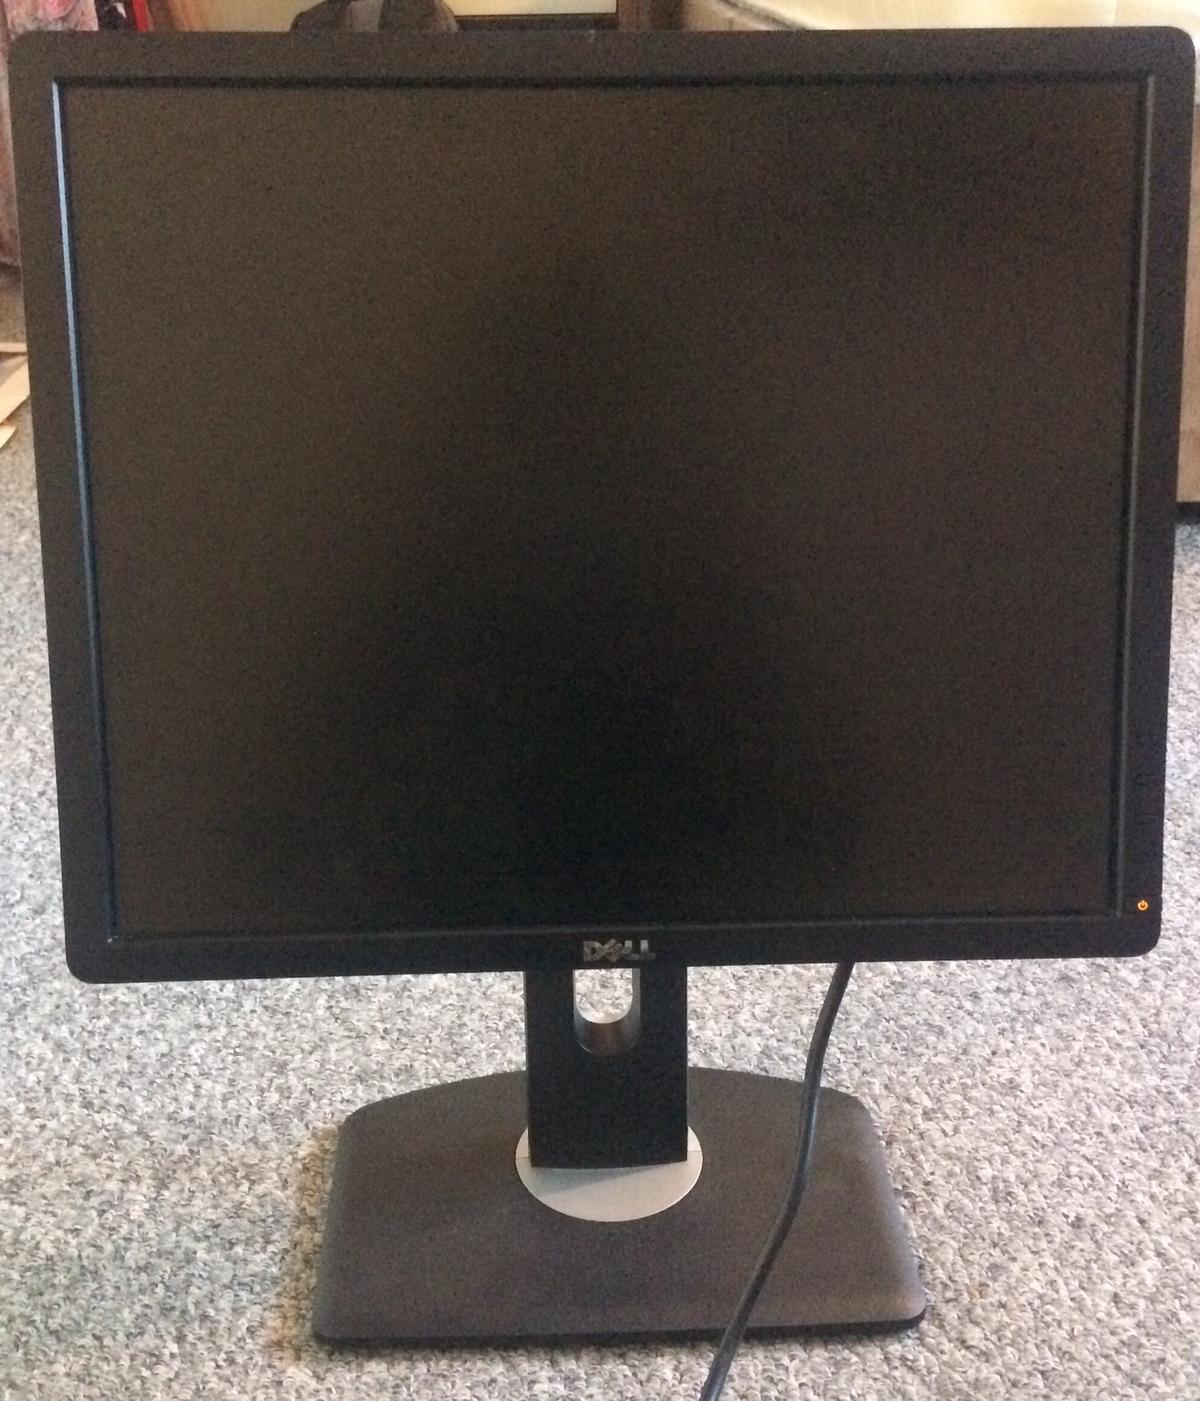 Dell Monitor in LE4 Leicester for £20 00 for sale - Shpock